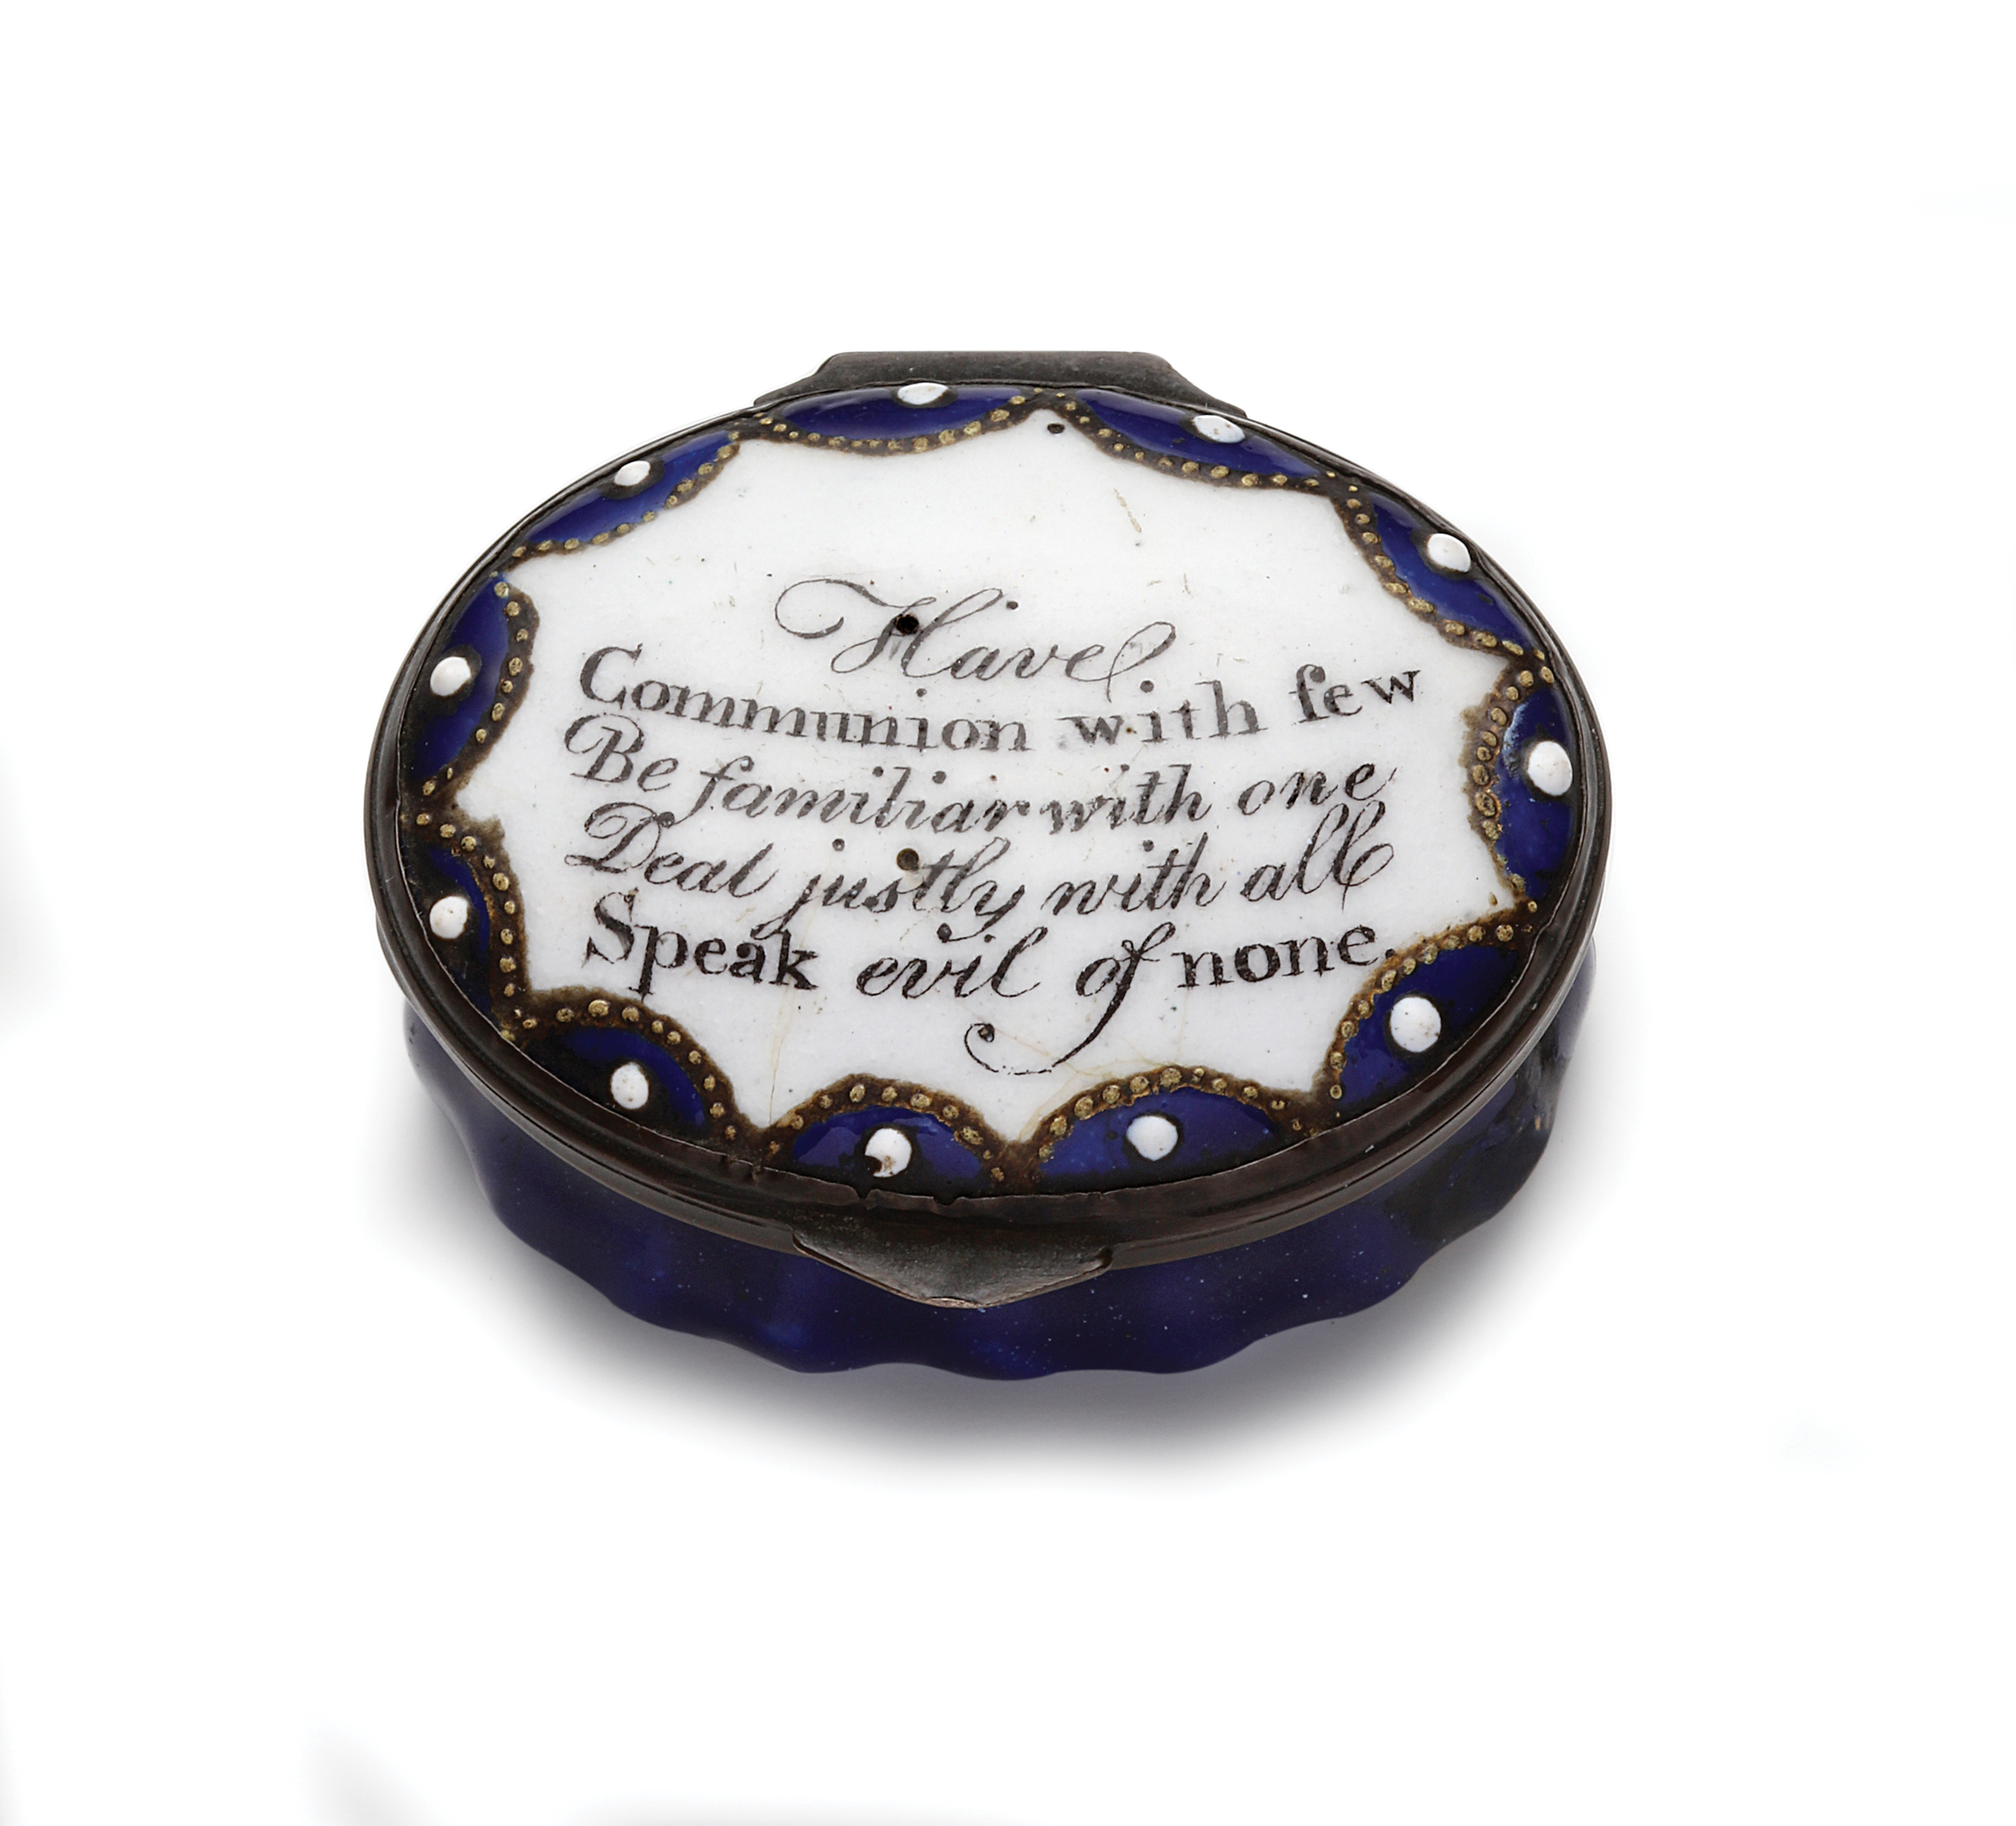 "Charming Battersea Bilston enamel pill box with hinged lid. Enamelled and mirrored interior. The verse reads ""Have communion with few, Be familiar with one, Deal justly with all, Speak evil of none."" Hand painted lace design.  AVAILABLE"